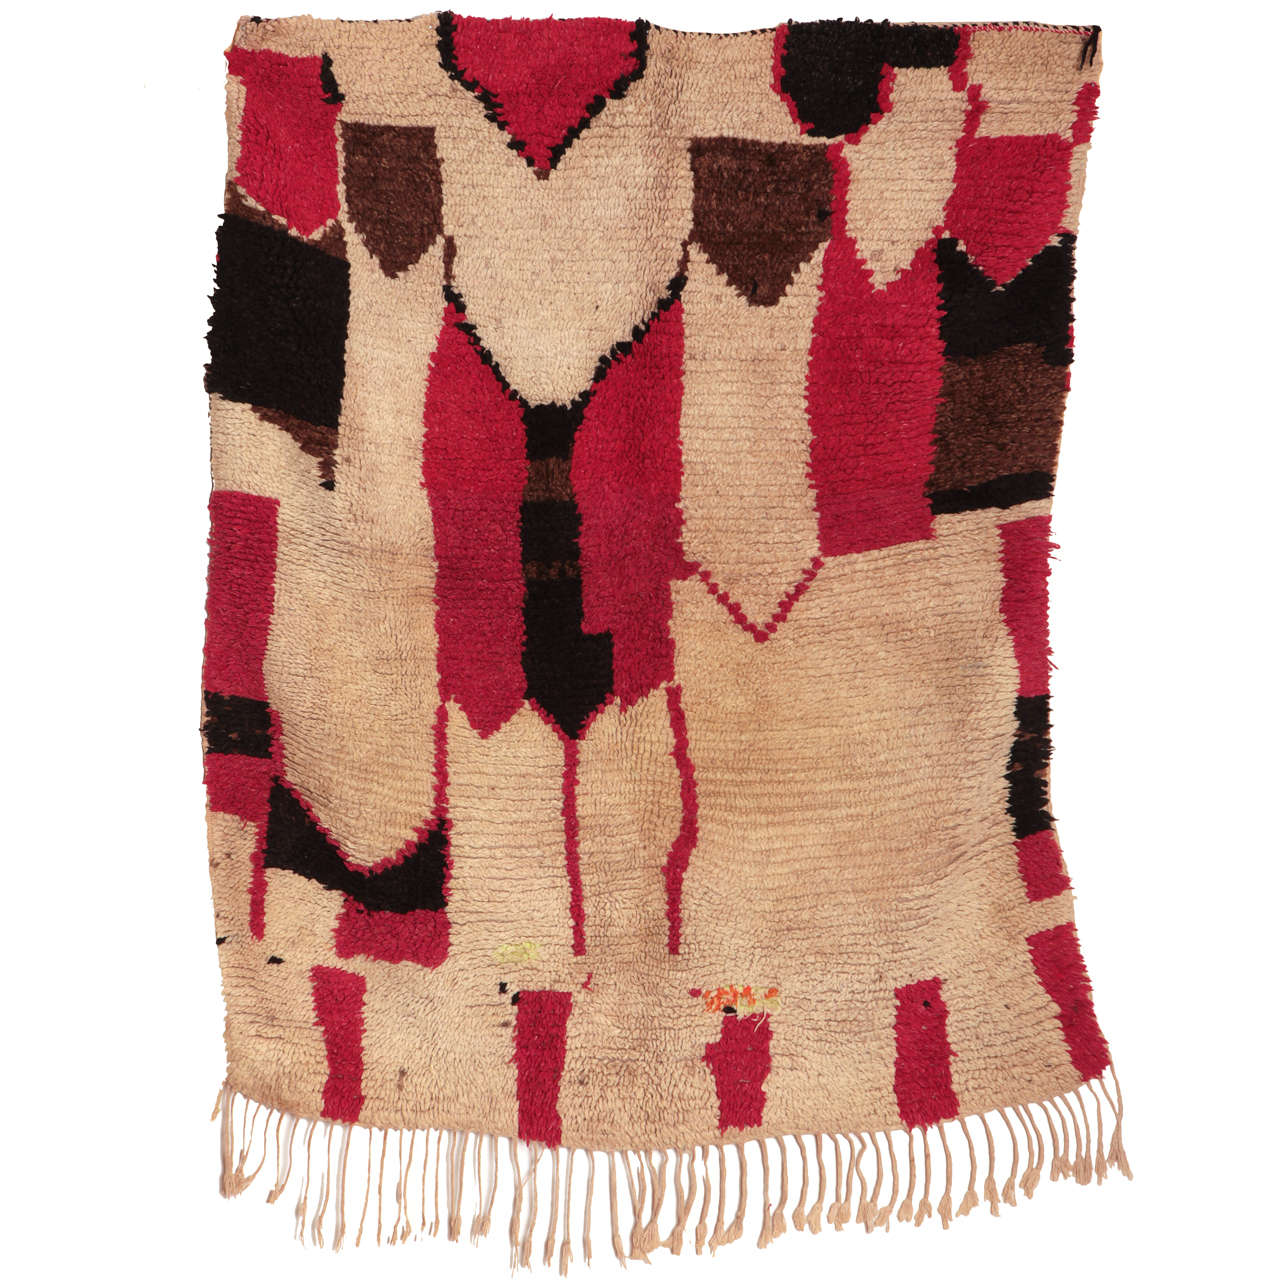 Moroccan Vintage Middle Atlas Rug At 1stdibs: Primitive And Modernist Berber Rug From Azilal, Circa 1950